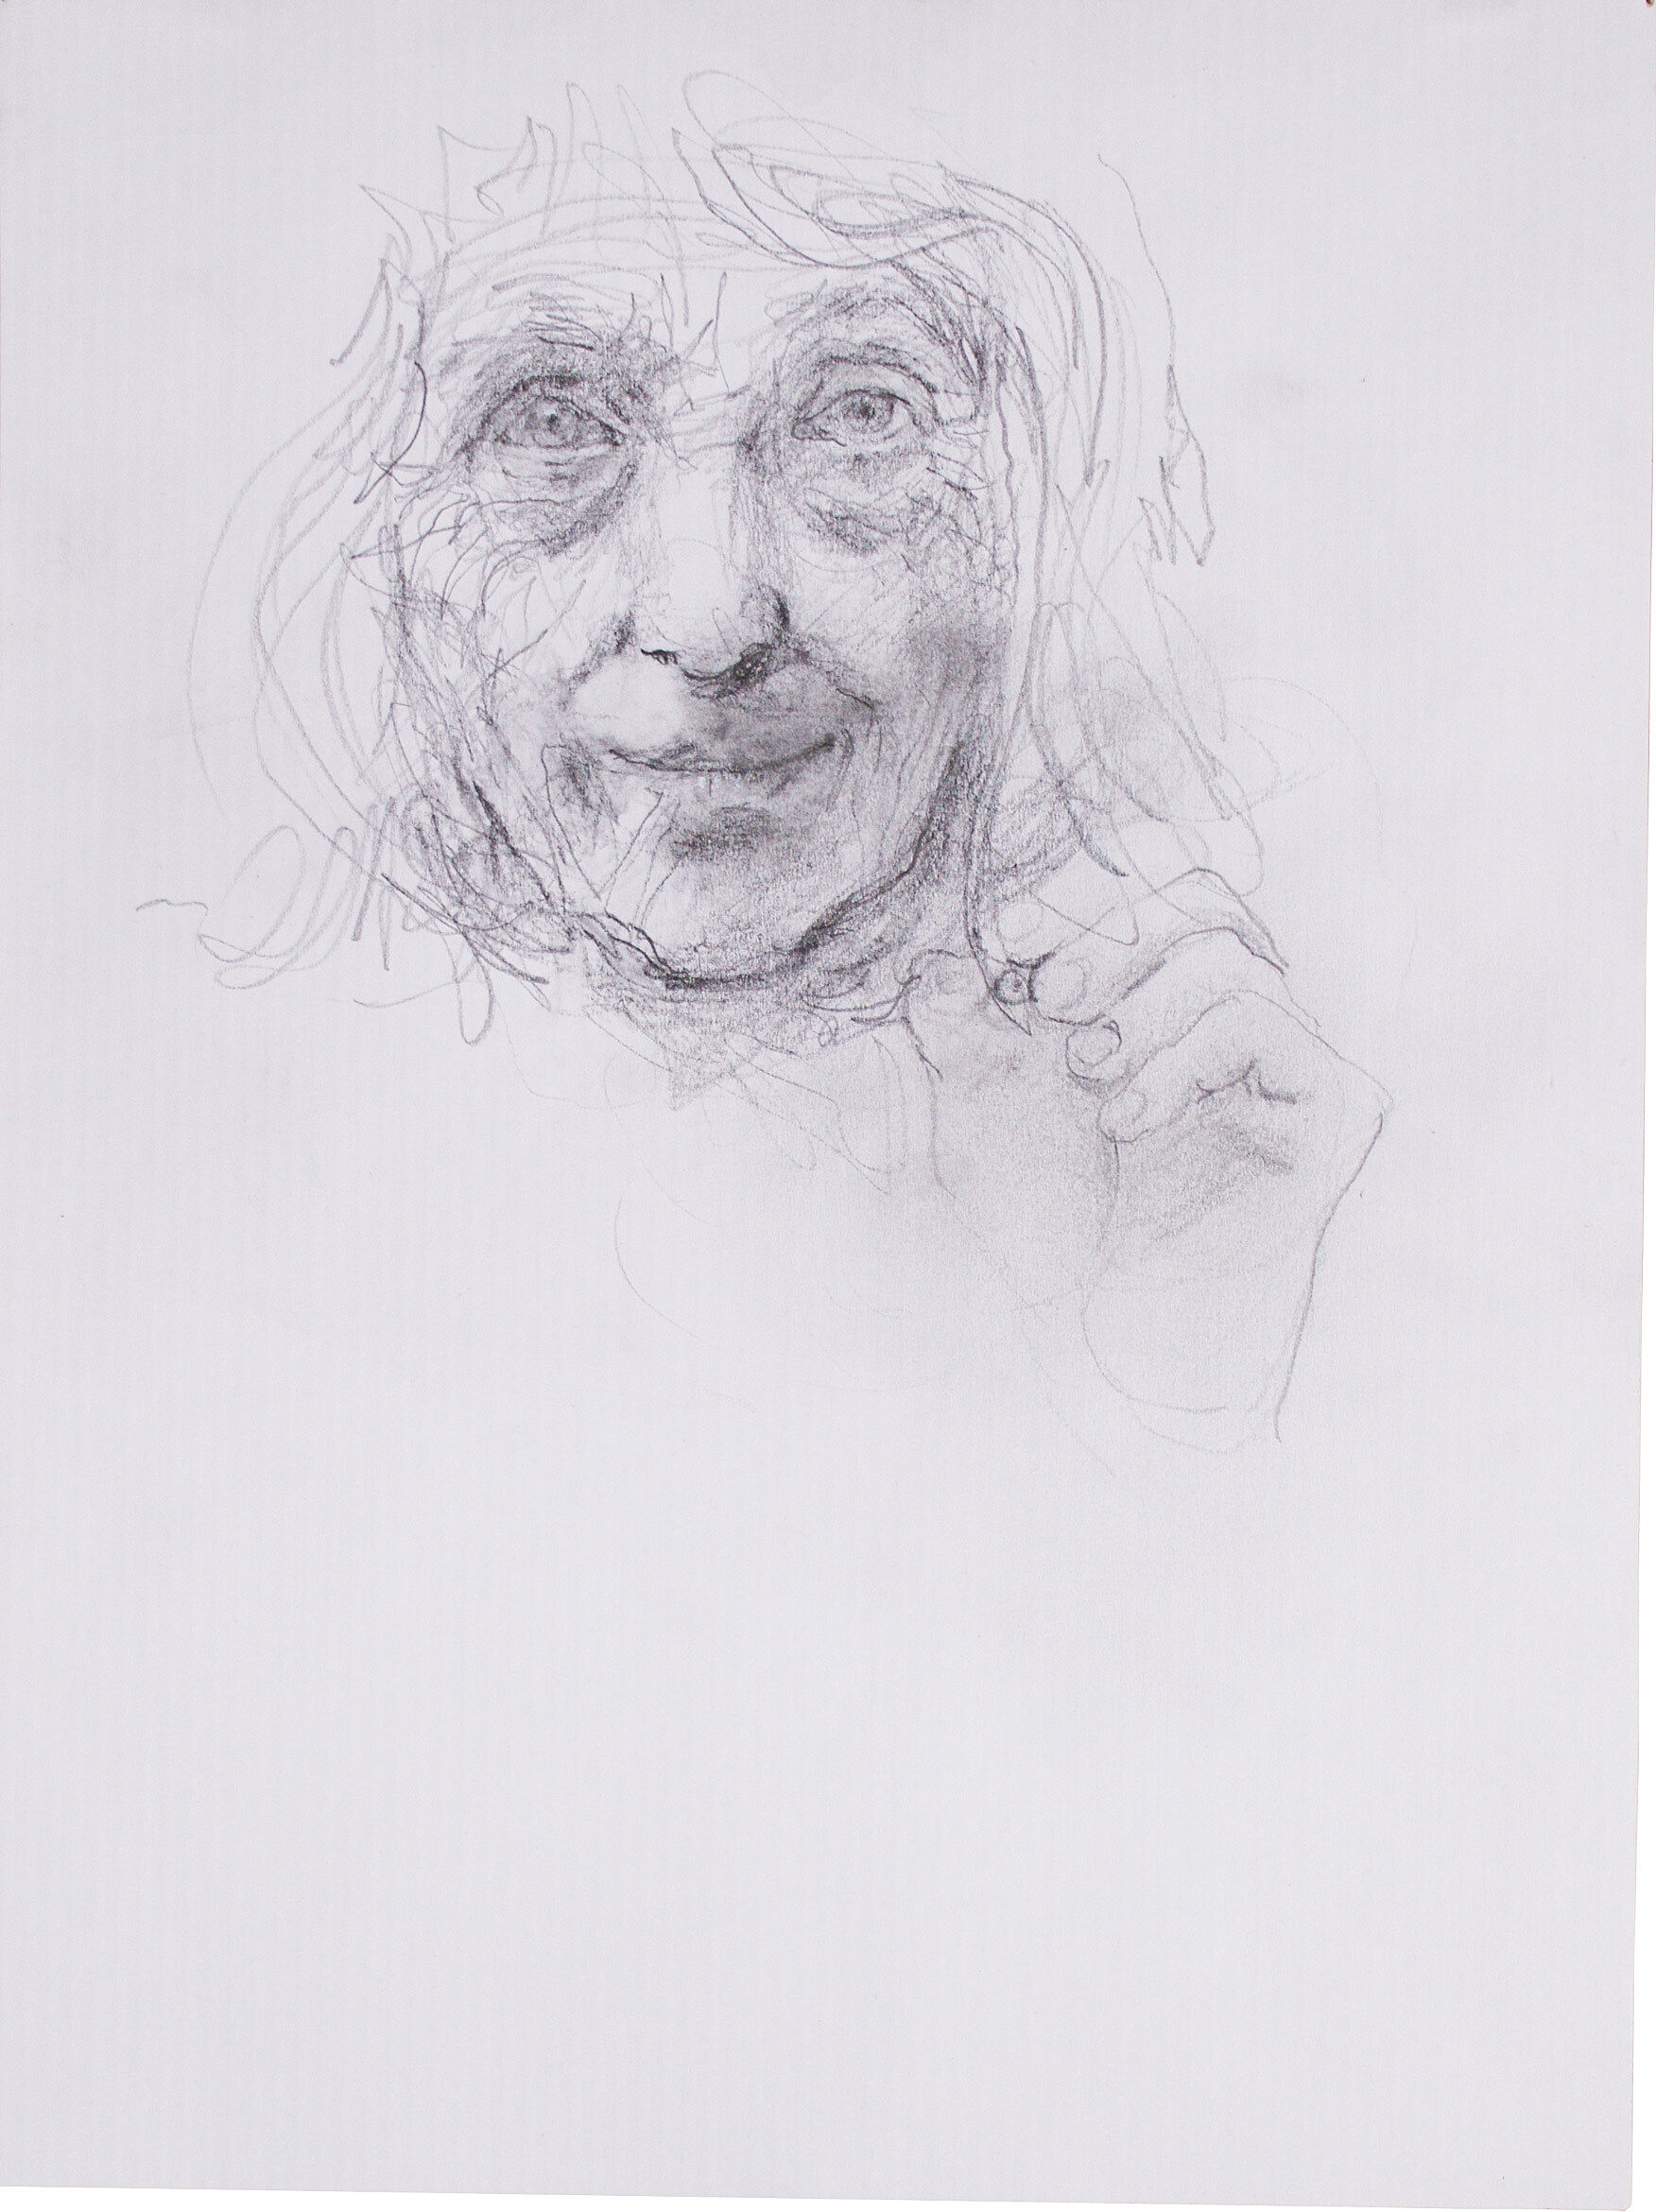 Pencil drawing of an older woman's face and hand.